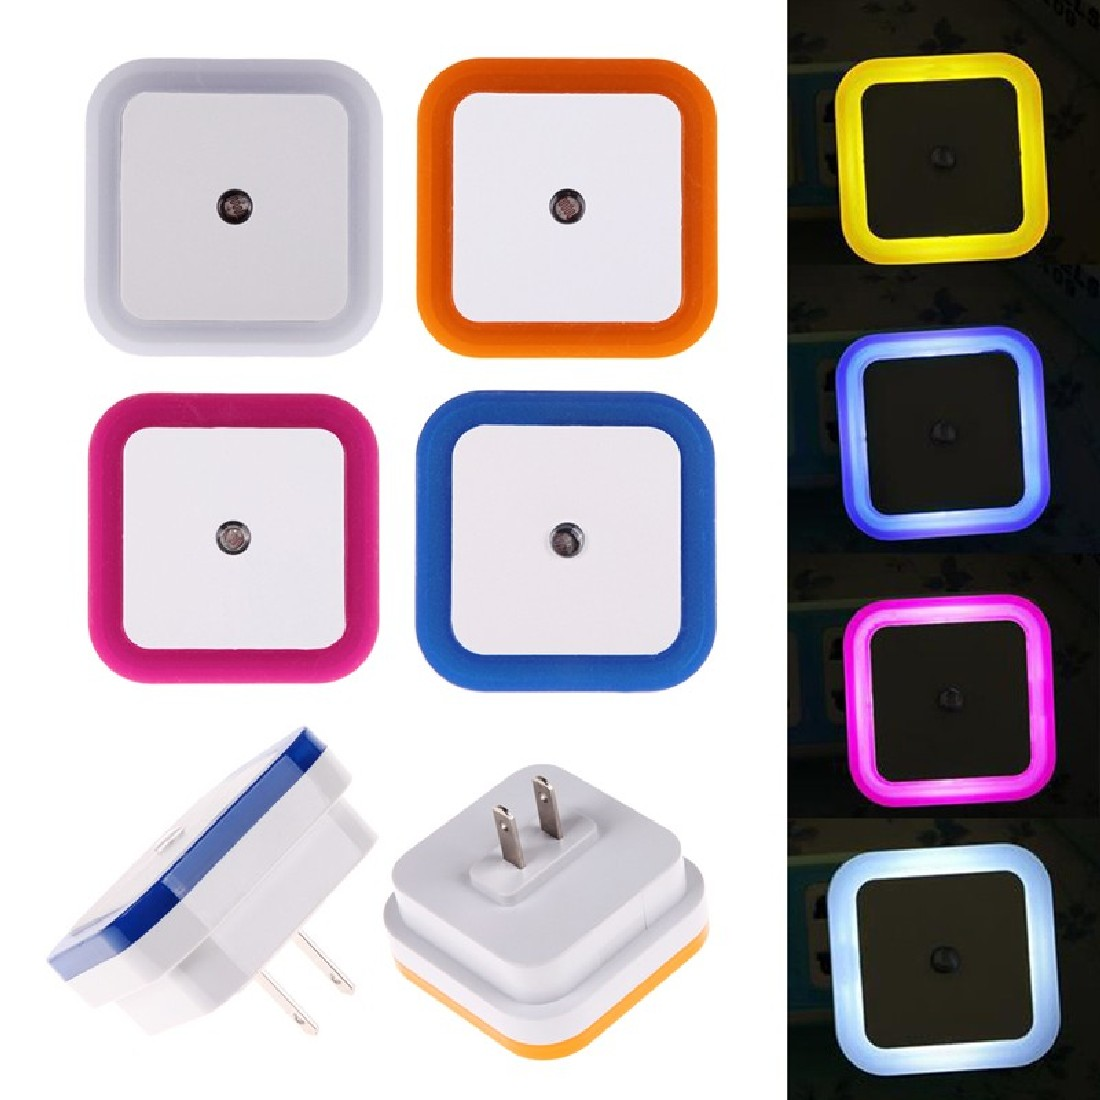 Bedroom Night Lights Bed Lamp Smart Lamp Household Lovely Square Auto LED Light Induction Sensor Control US Plug